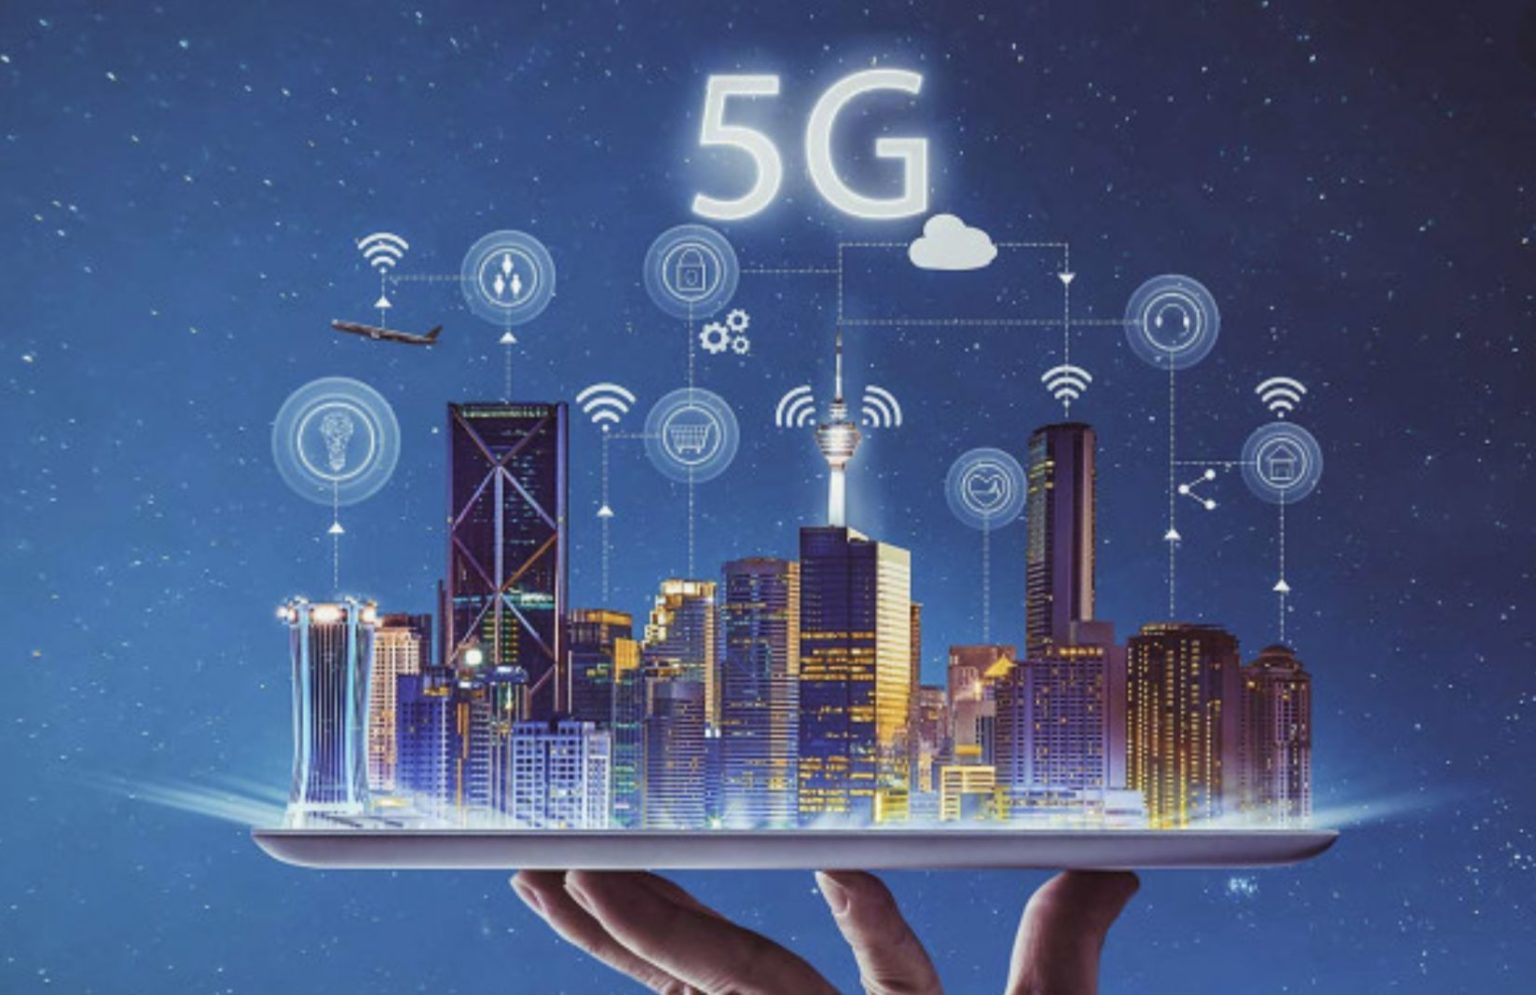 10 new 5G towers under construction in Nong Prue, Pattaya